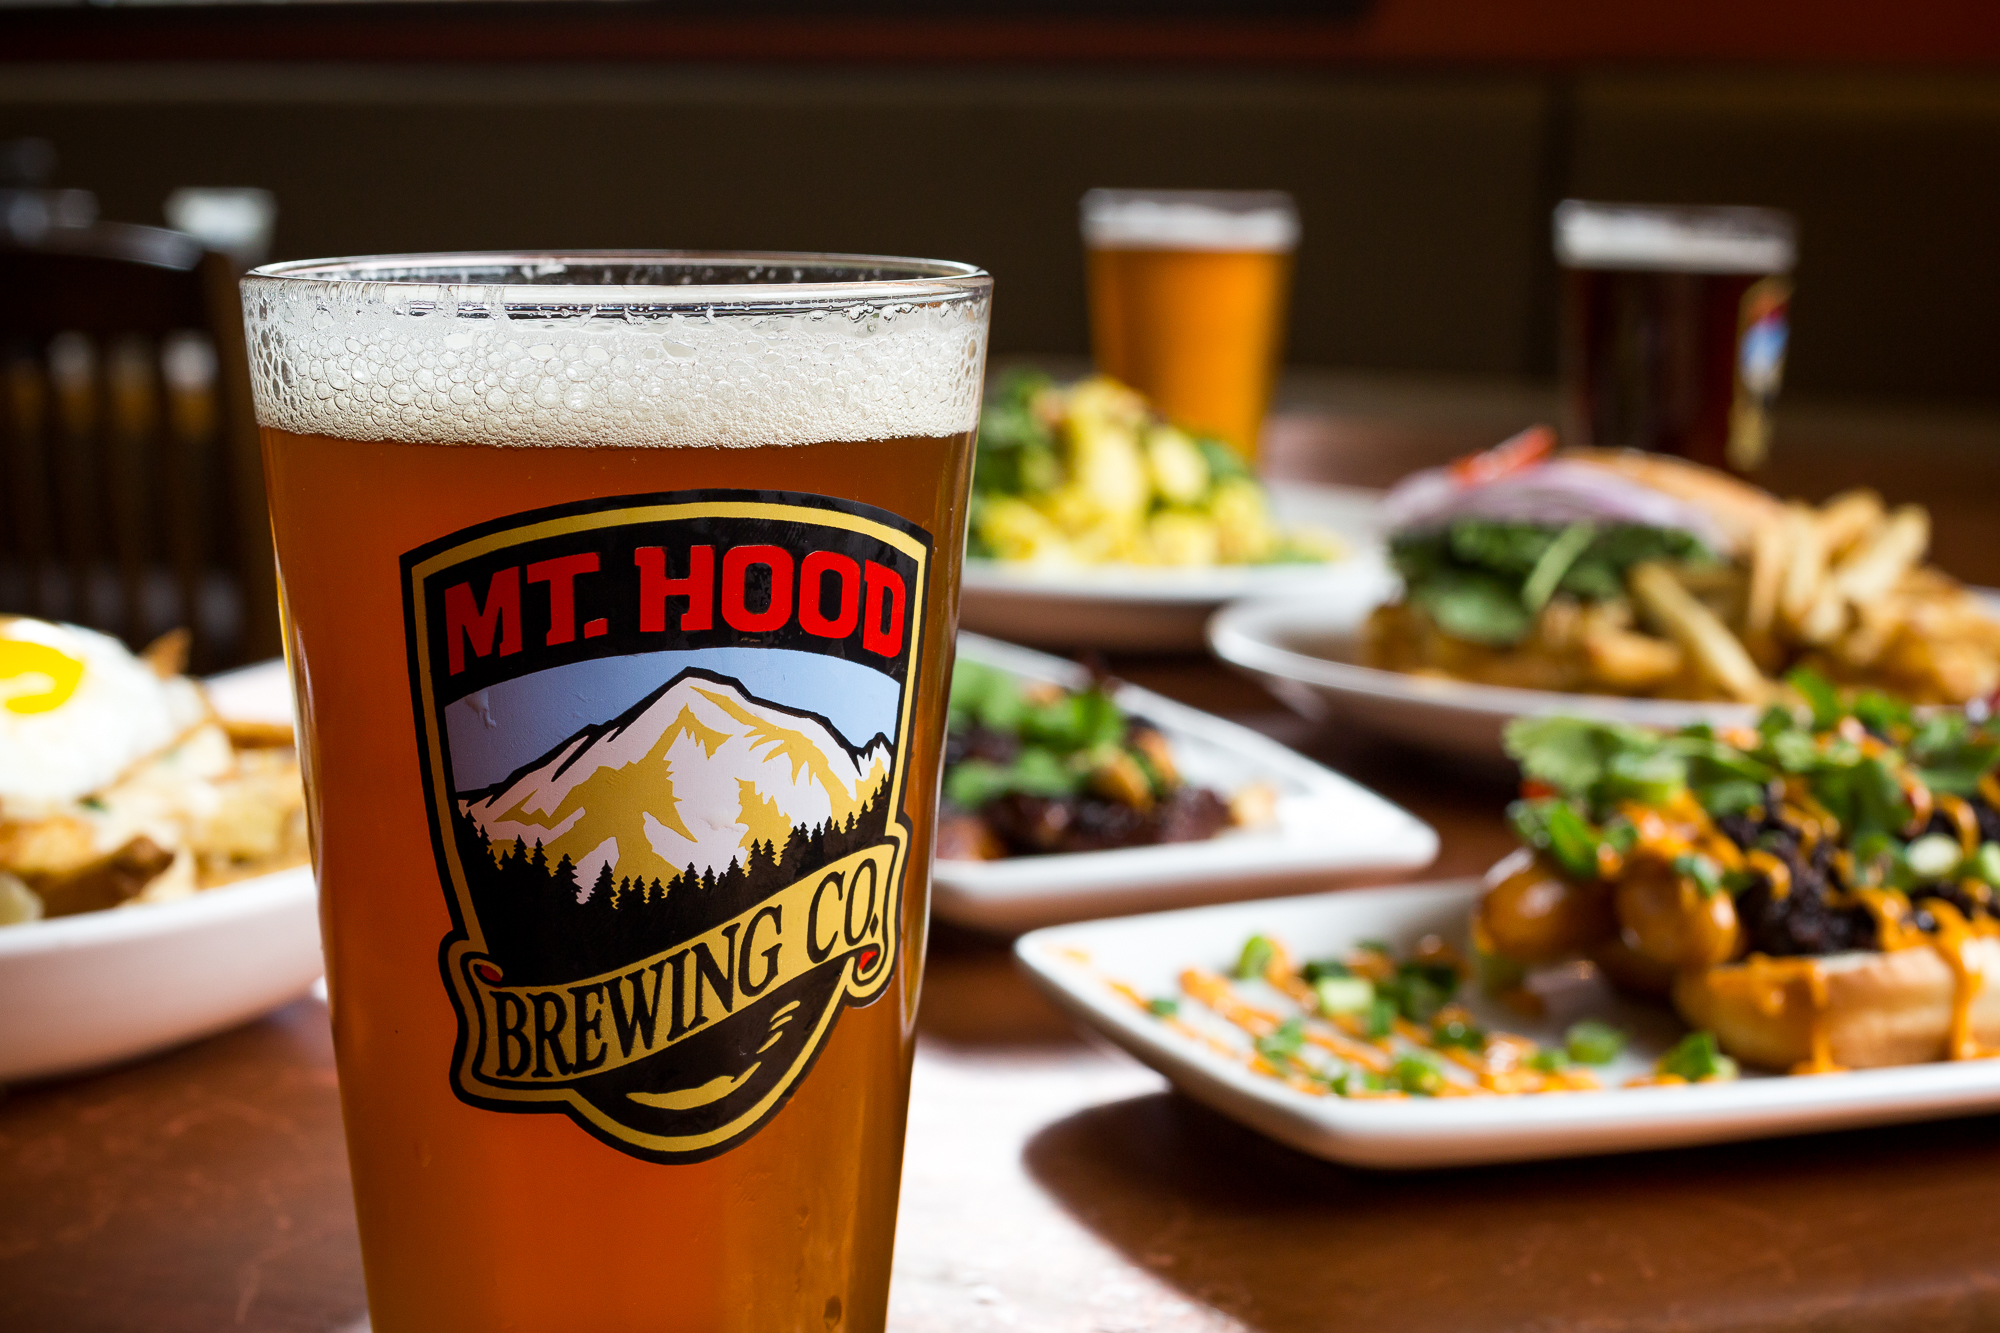 MT HOOD BREWING CO